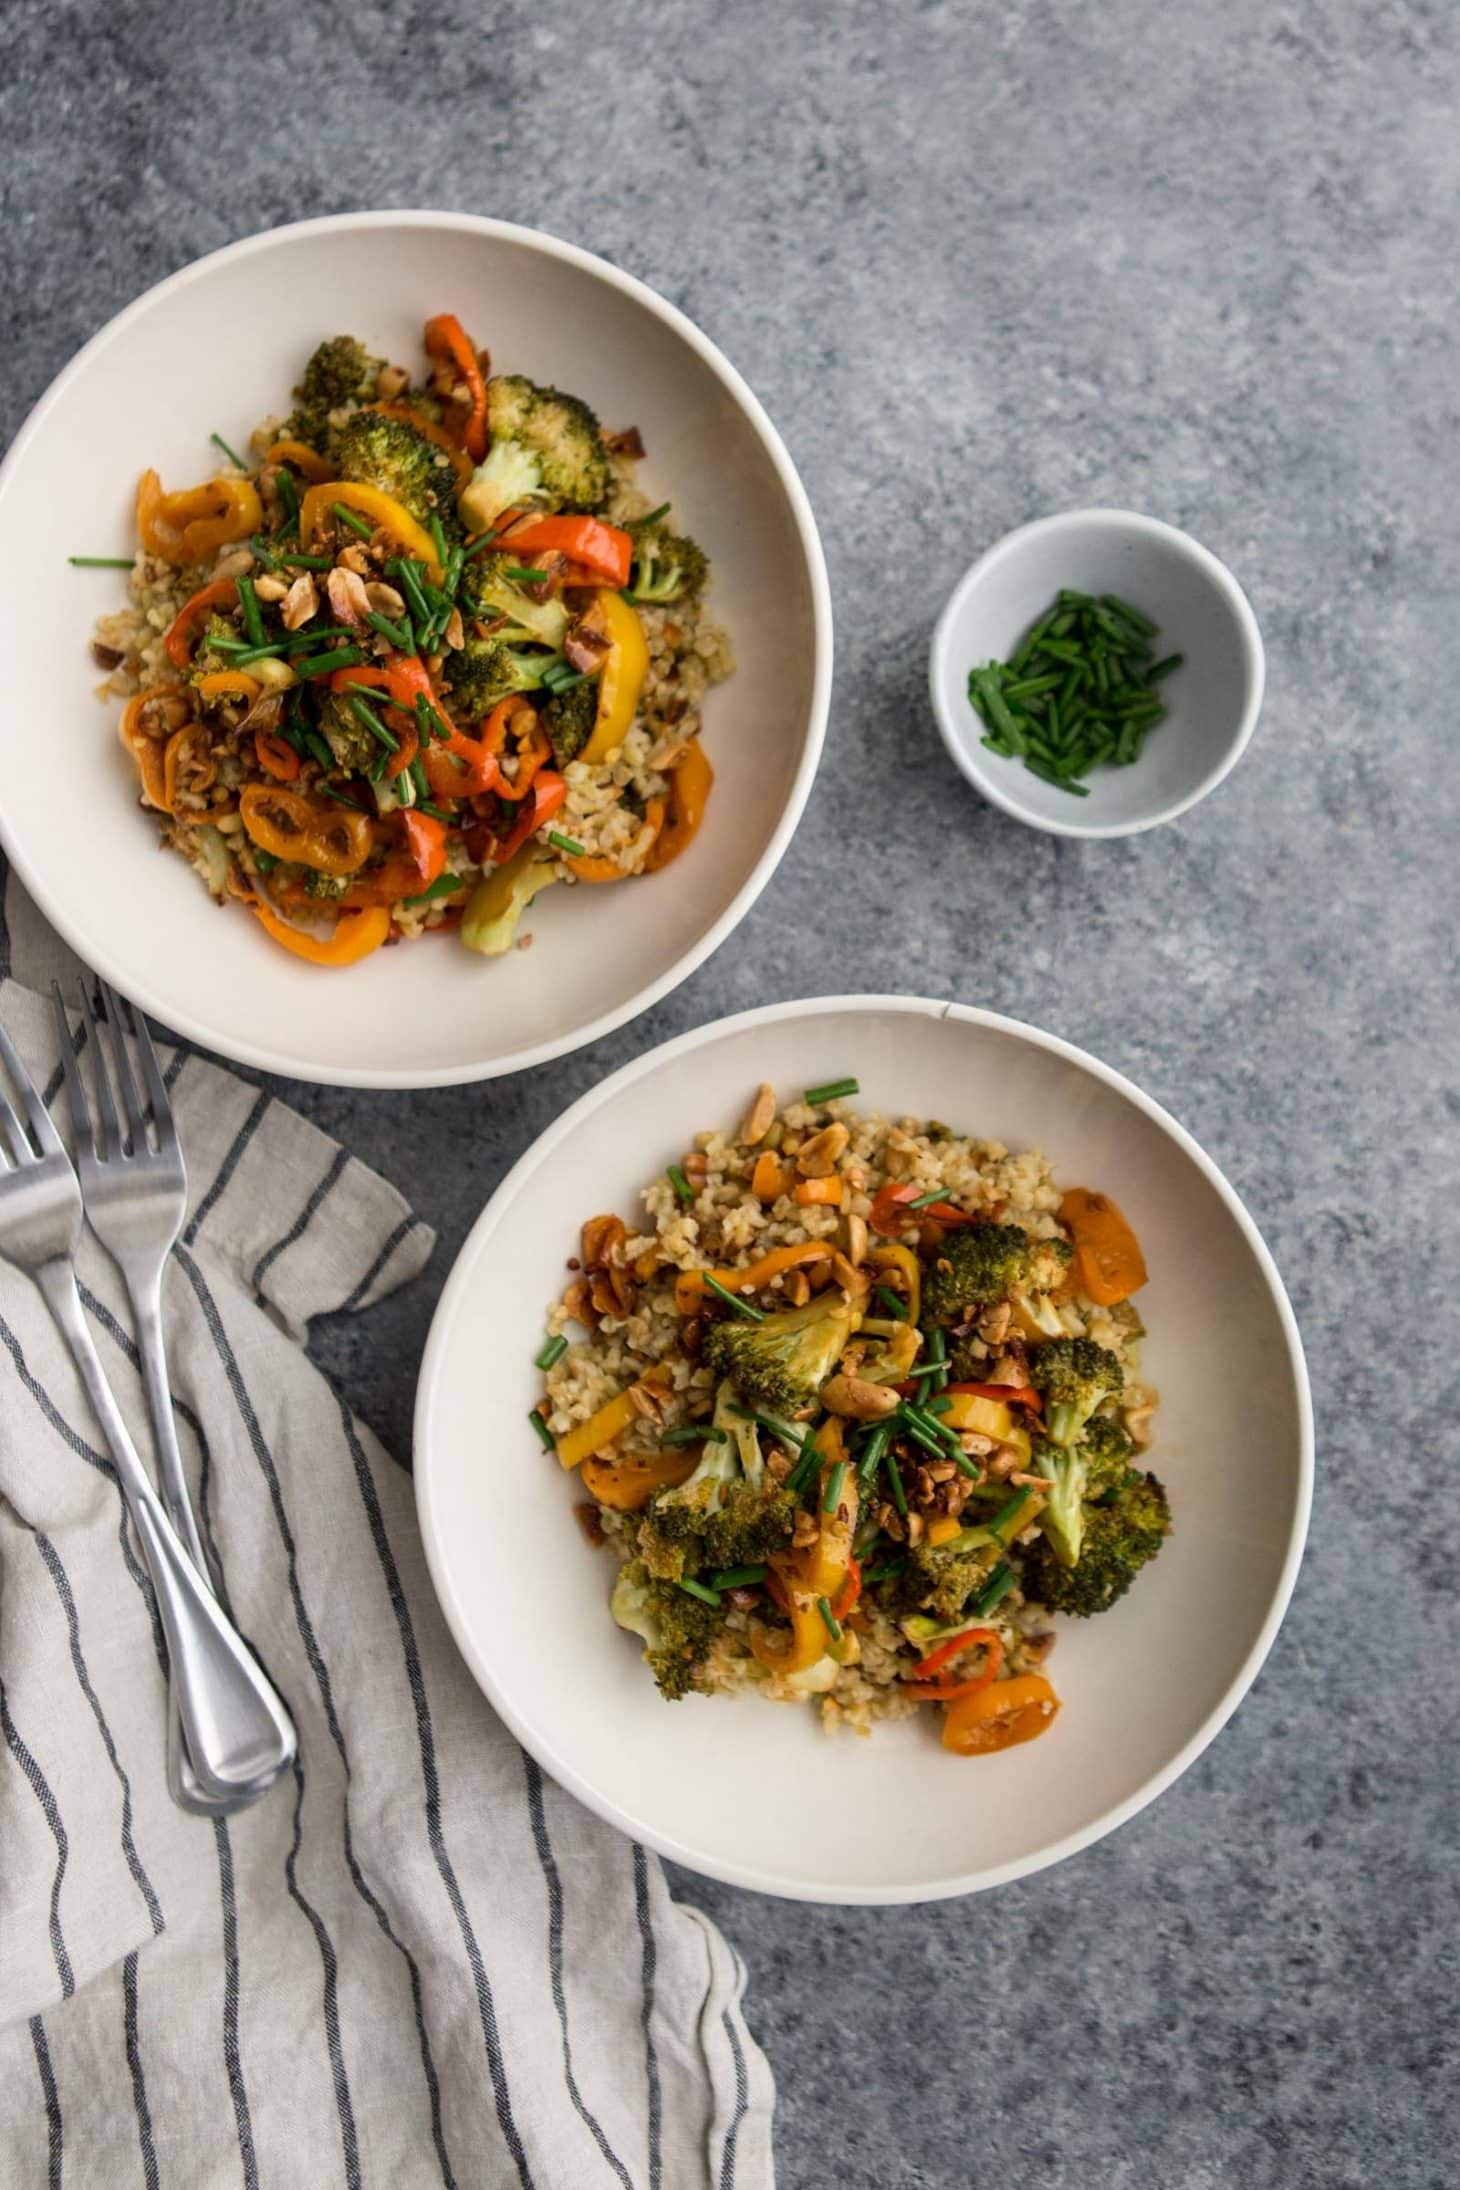 Chili Roasted Broccoli Bowls with Freekeh | @naturallyella